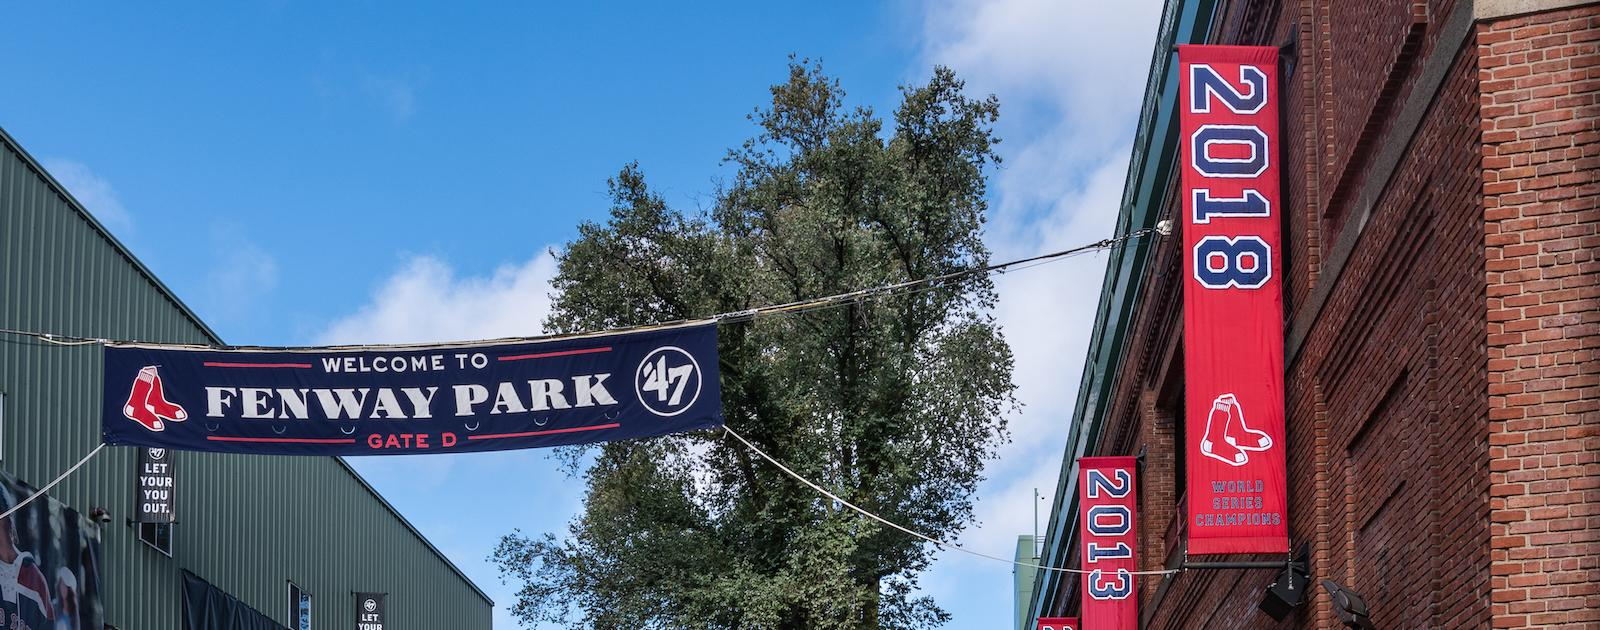 Banners hanging outside of Fenway Park, celebrating the years the Sox won the World Series